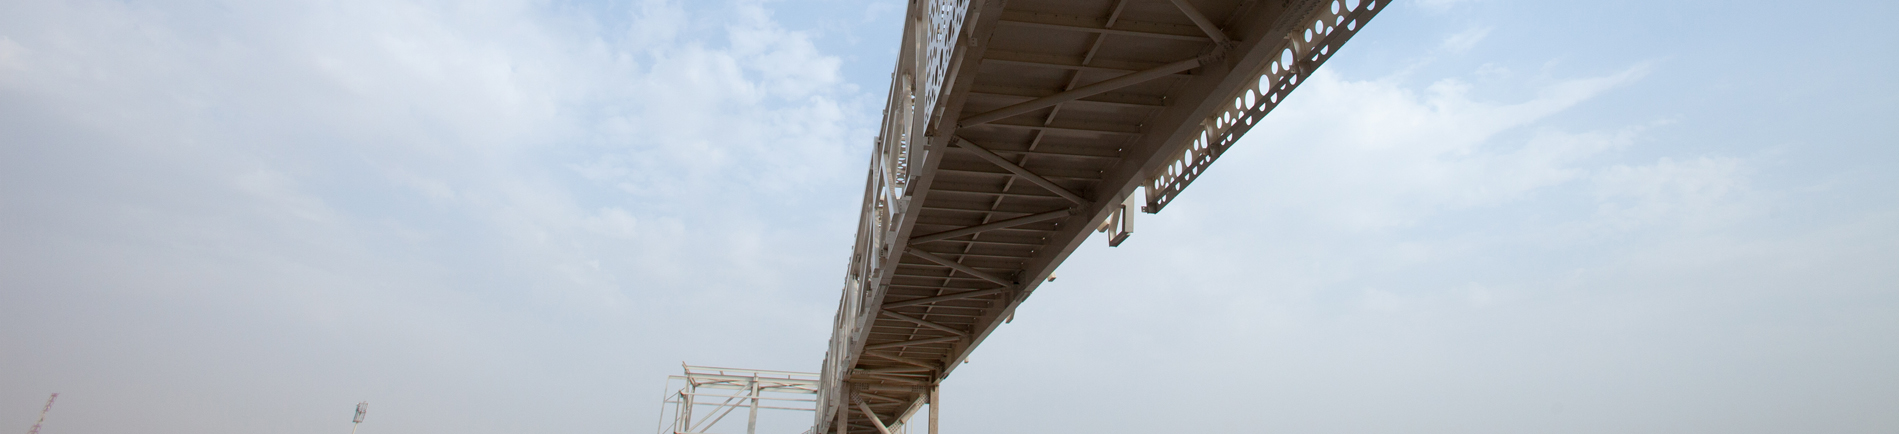 Design and Build of Pedestrian Bridges